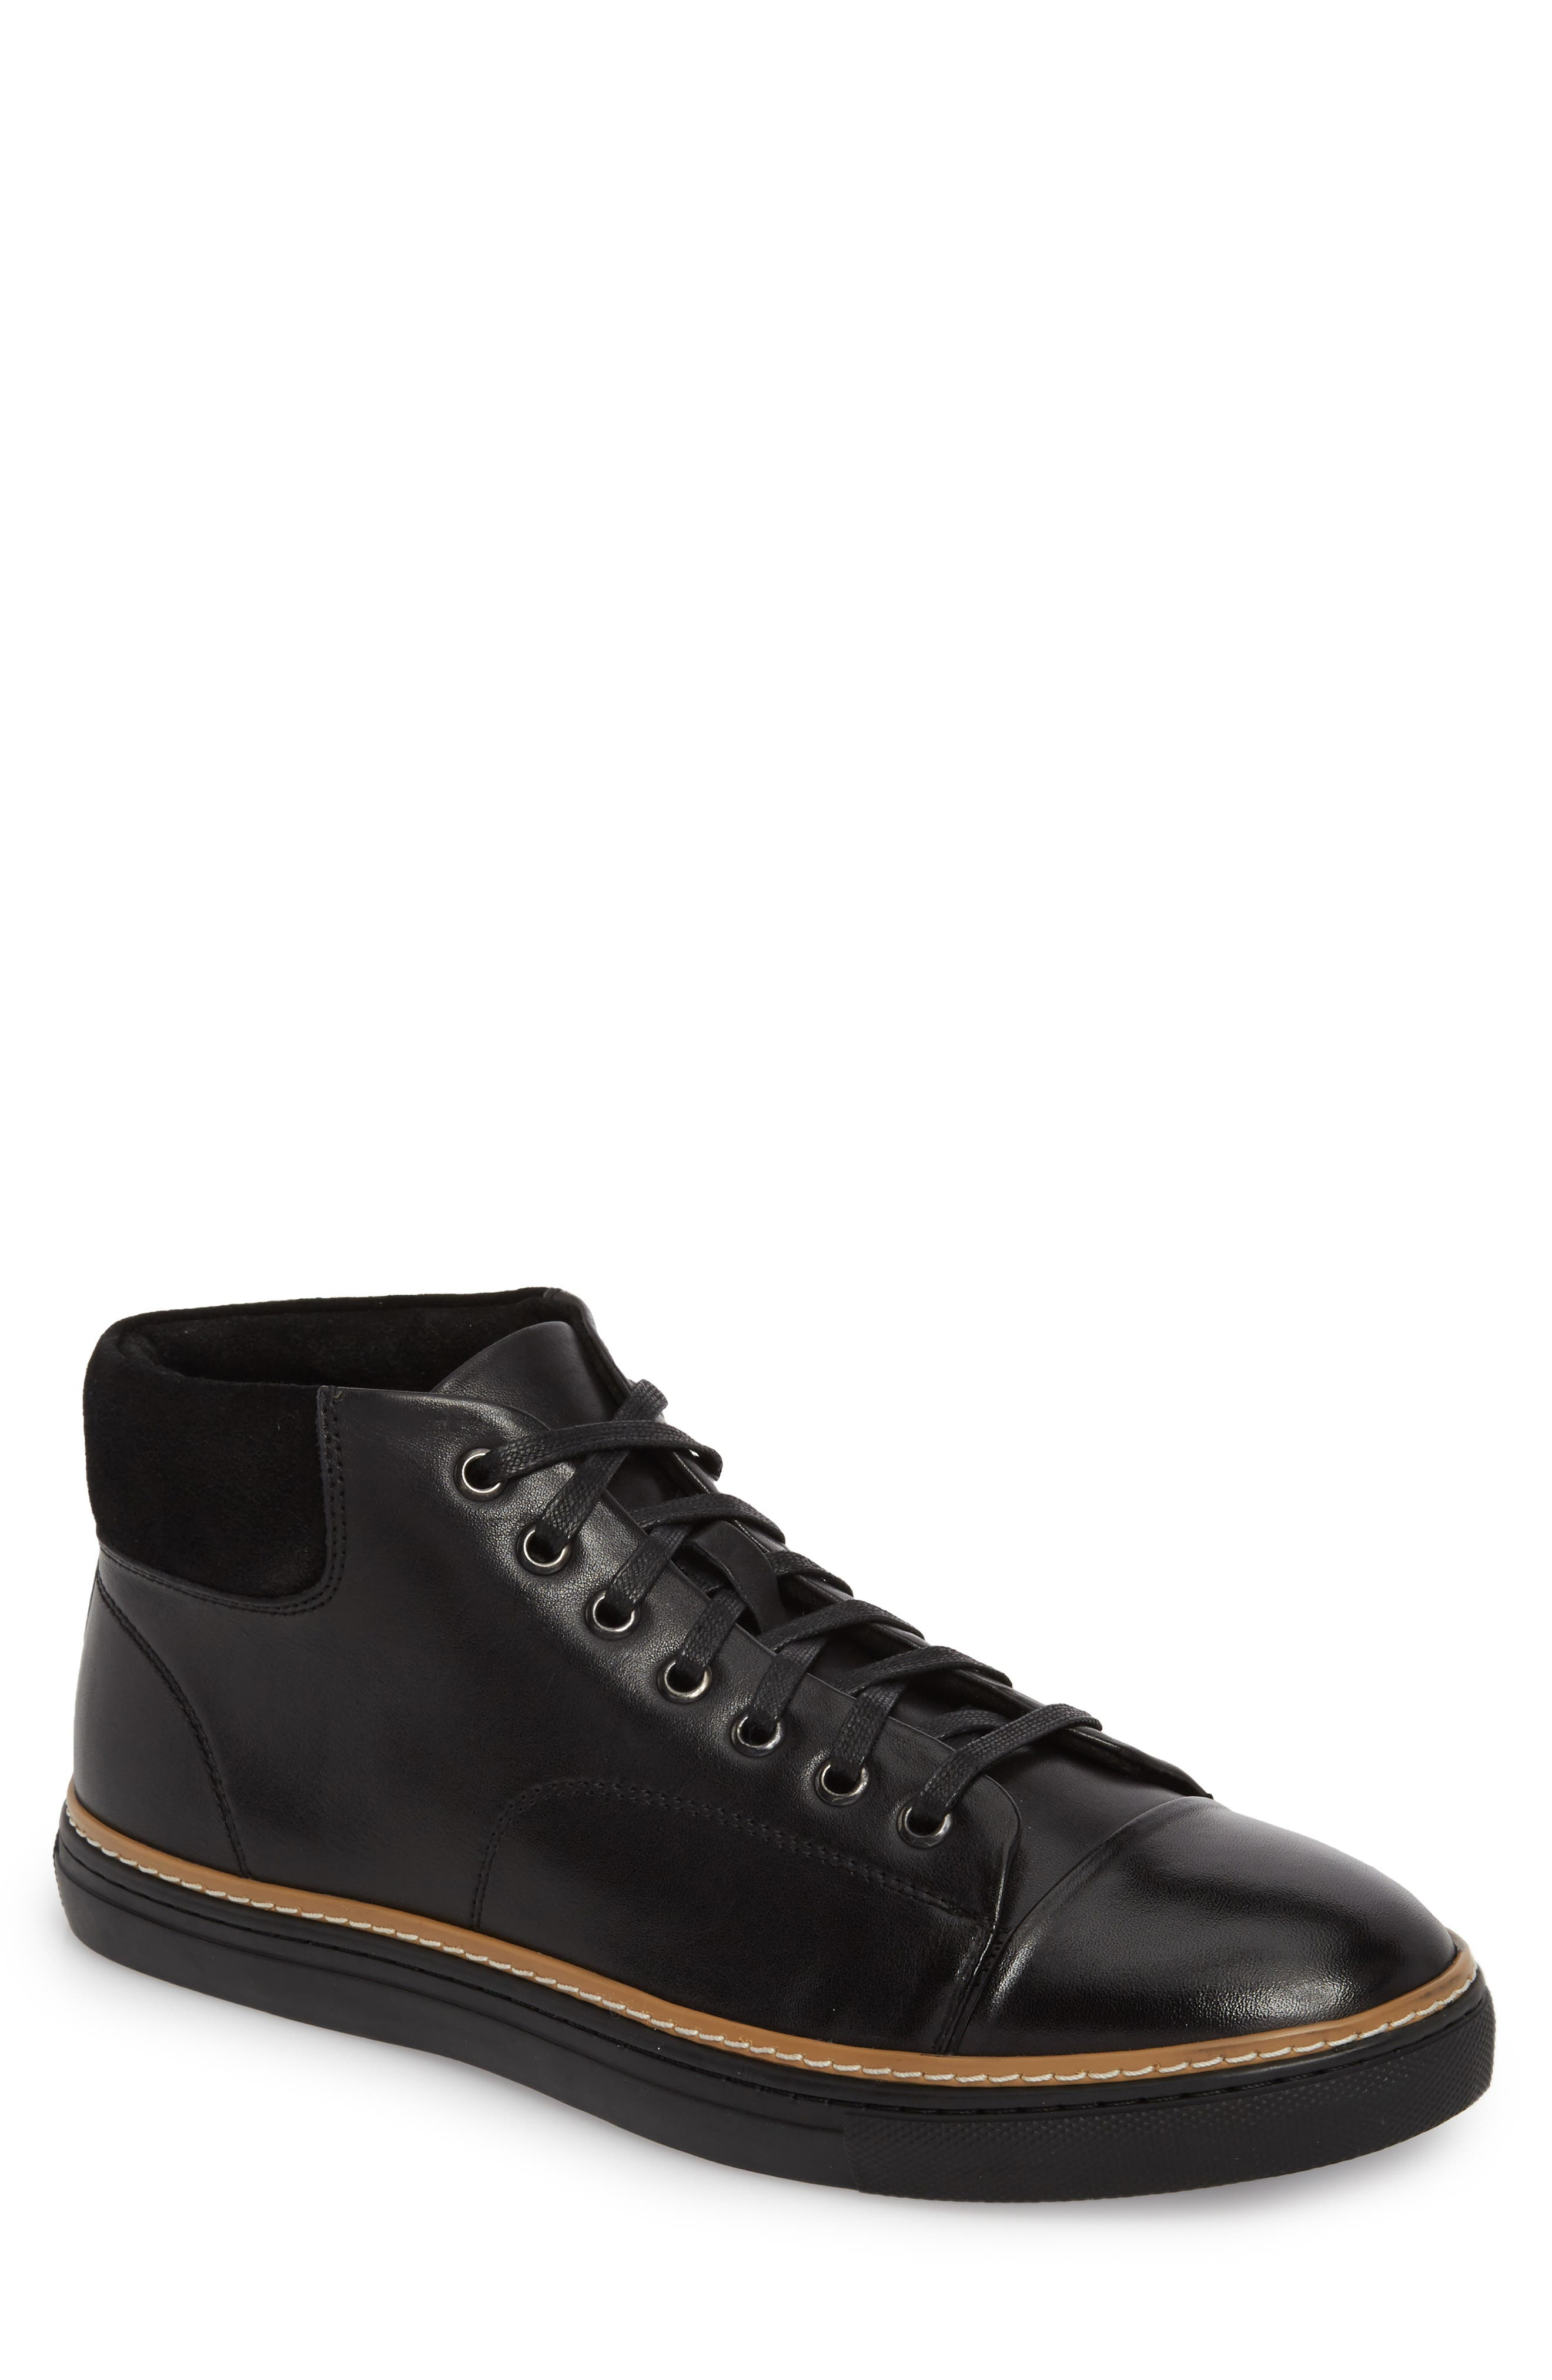 Grove Sneaker,                         Main,                         color, BLACK LEATHER